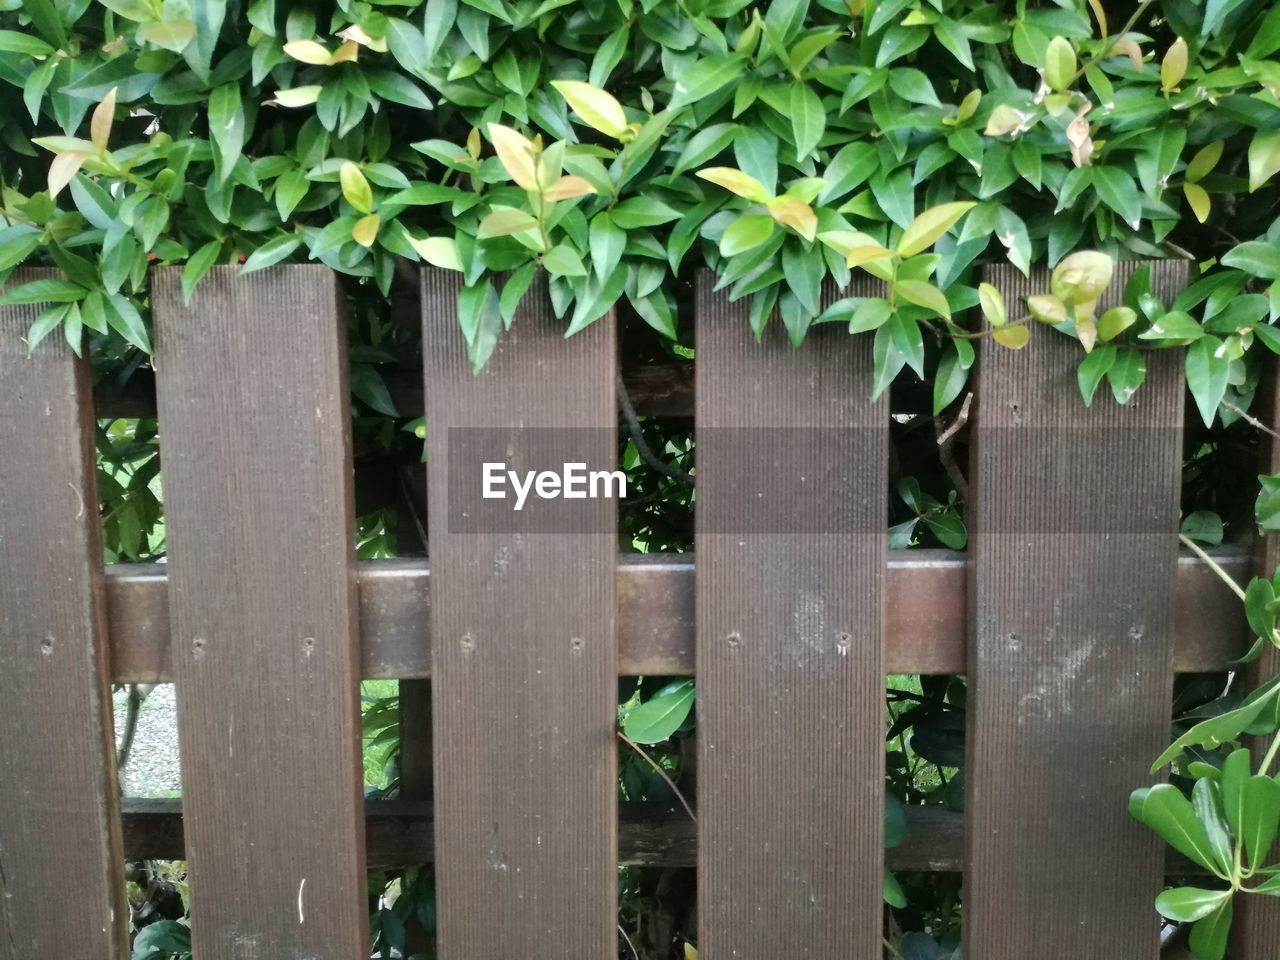 plant, plant part, leaf, barrier, boundary, fence, growth, green color, no people, nature, wood - material, day, close-up, outdoors, security, protection, safety, built structure, beauty in nature, ivy